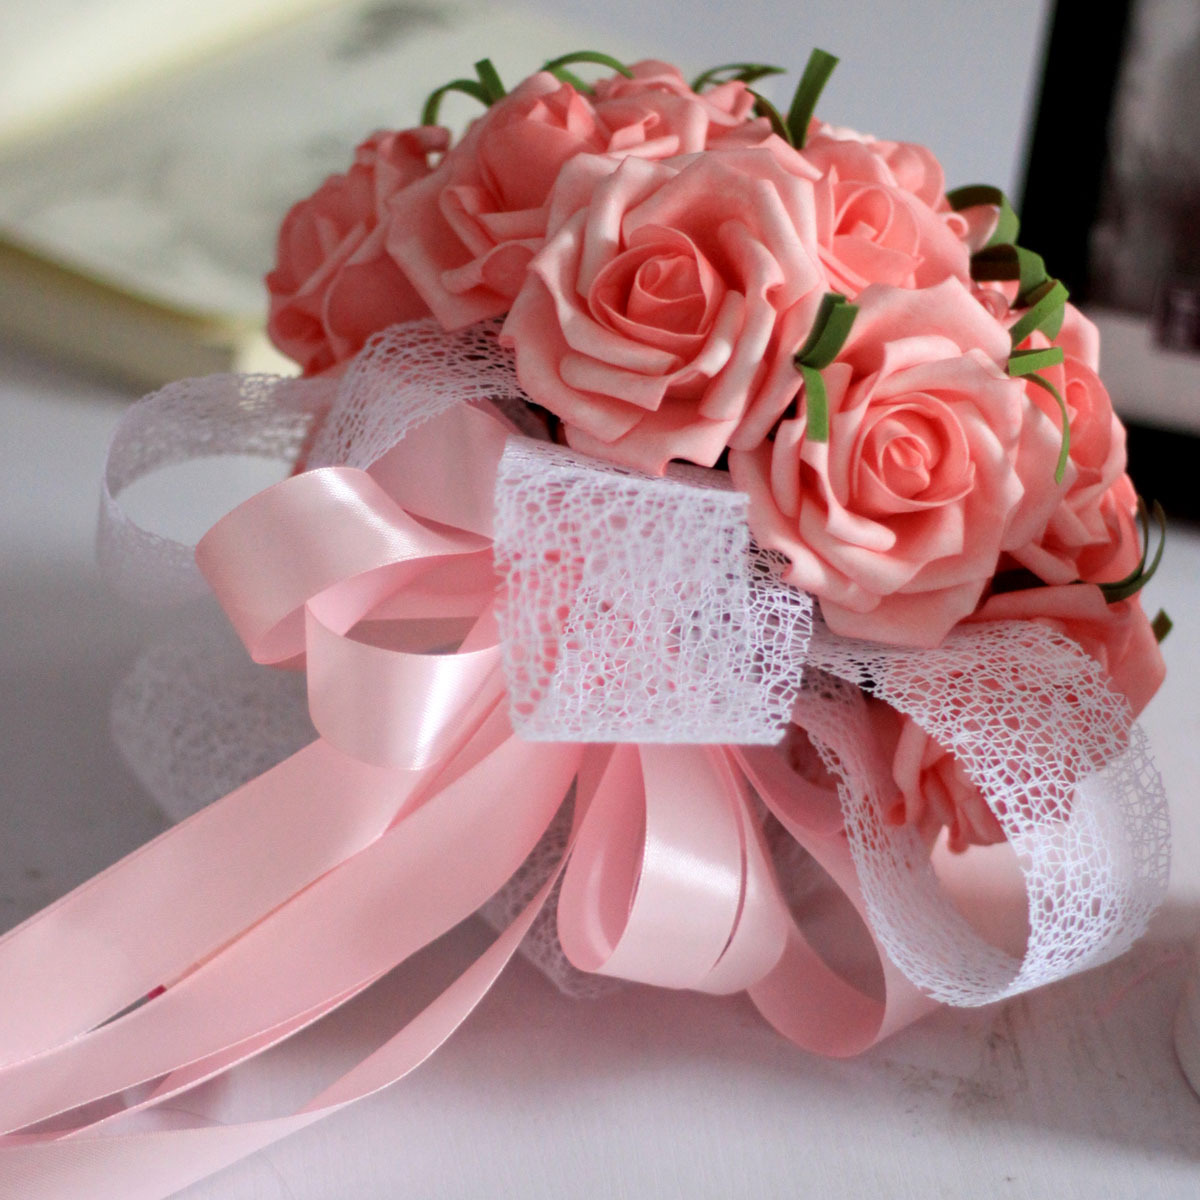 Usd 1299 Holding Flowers Fake Flowers Silk Flowers Decorative